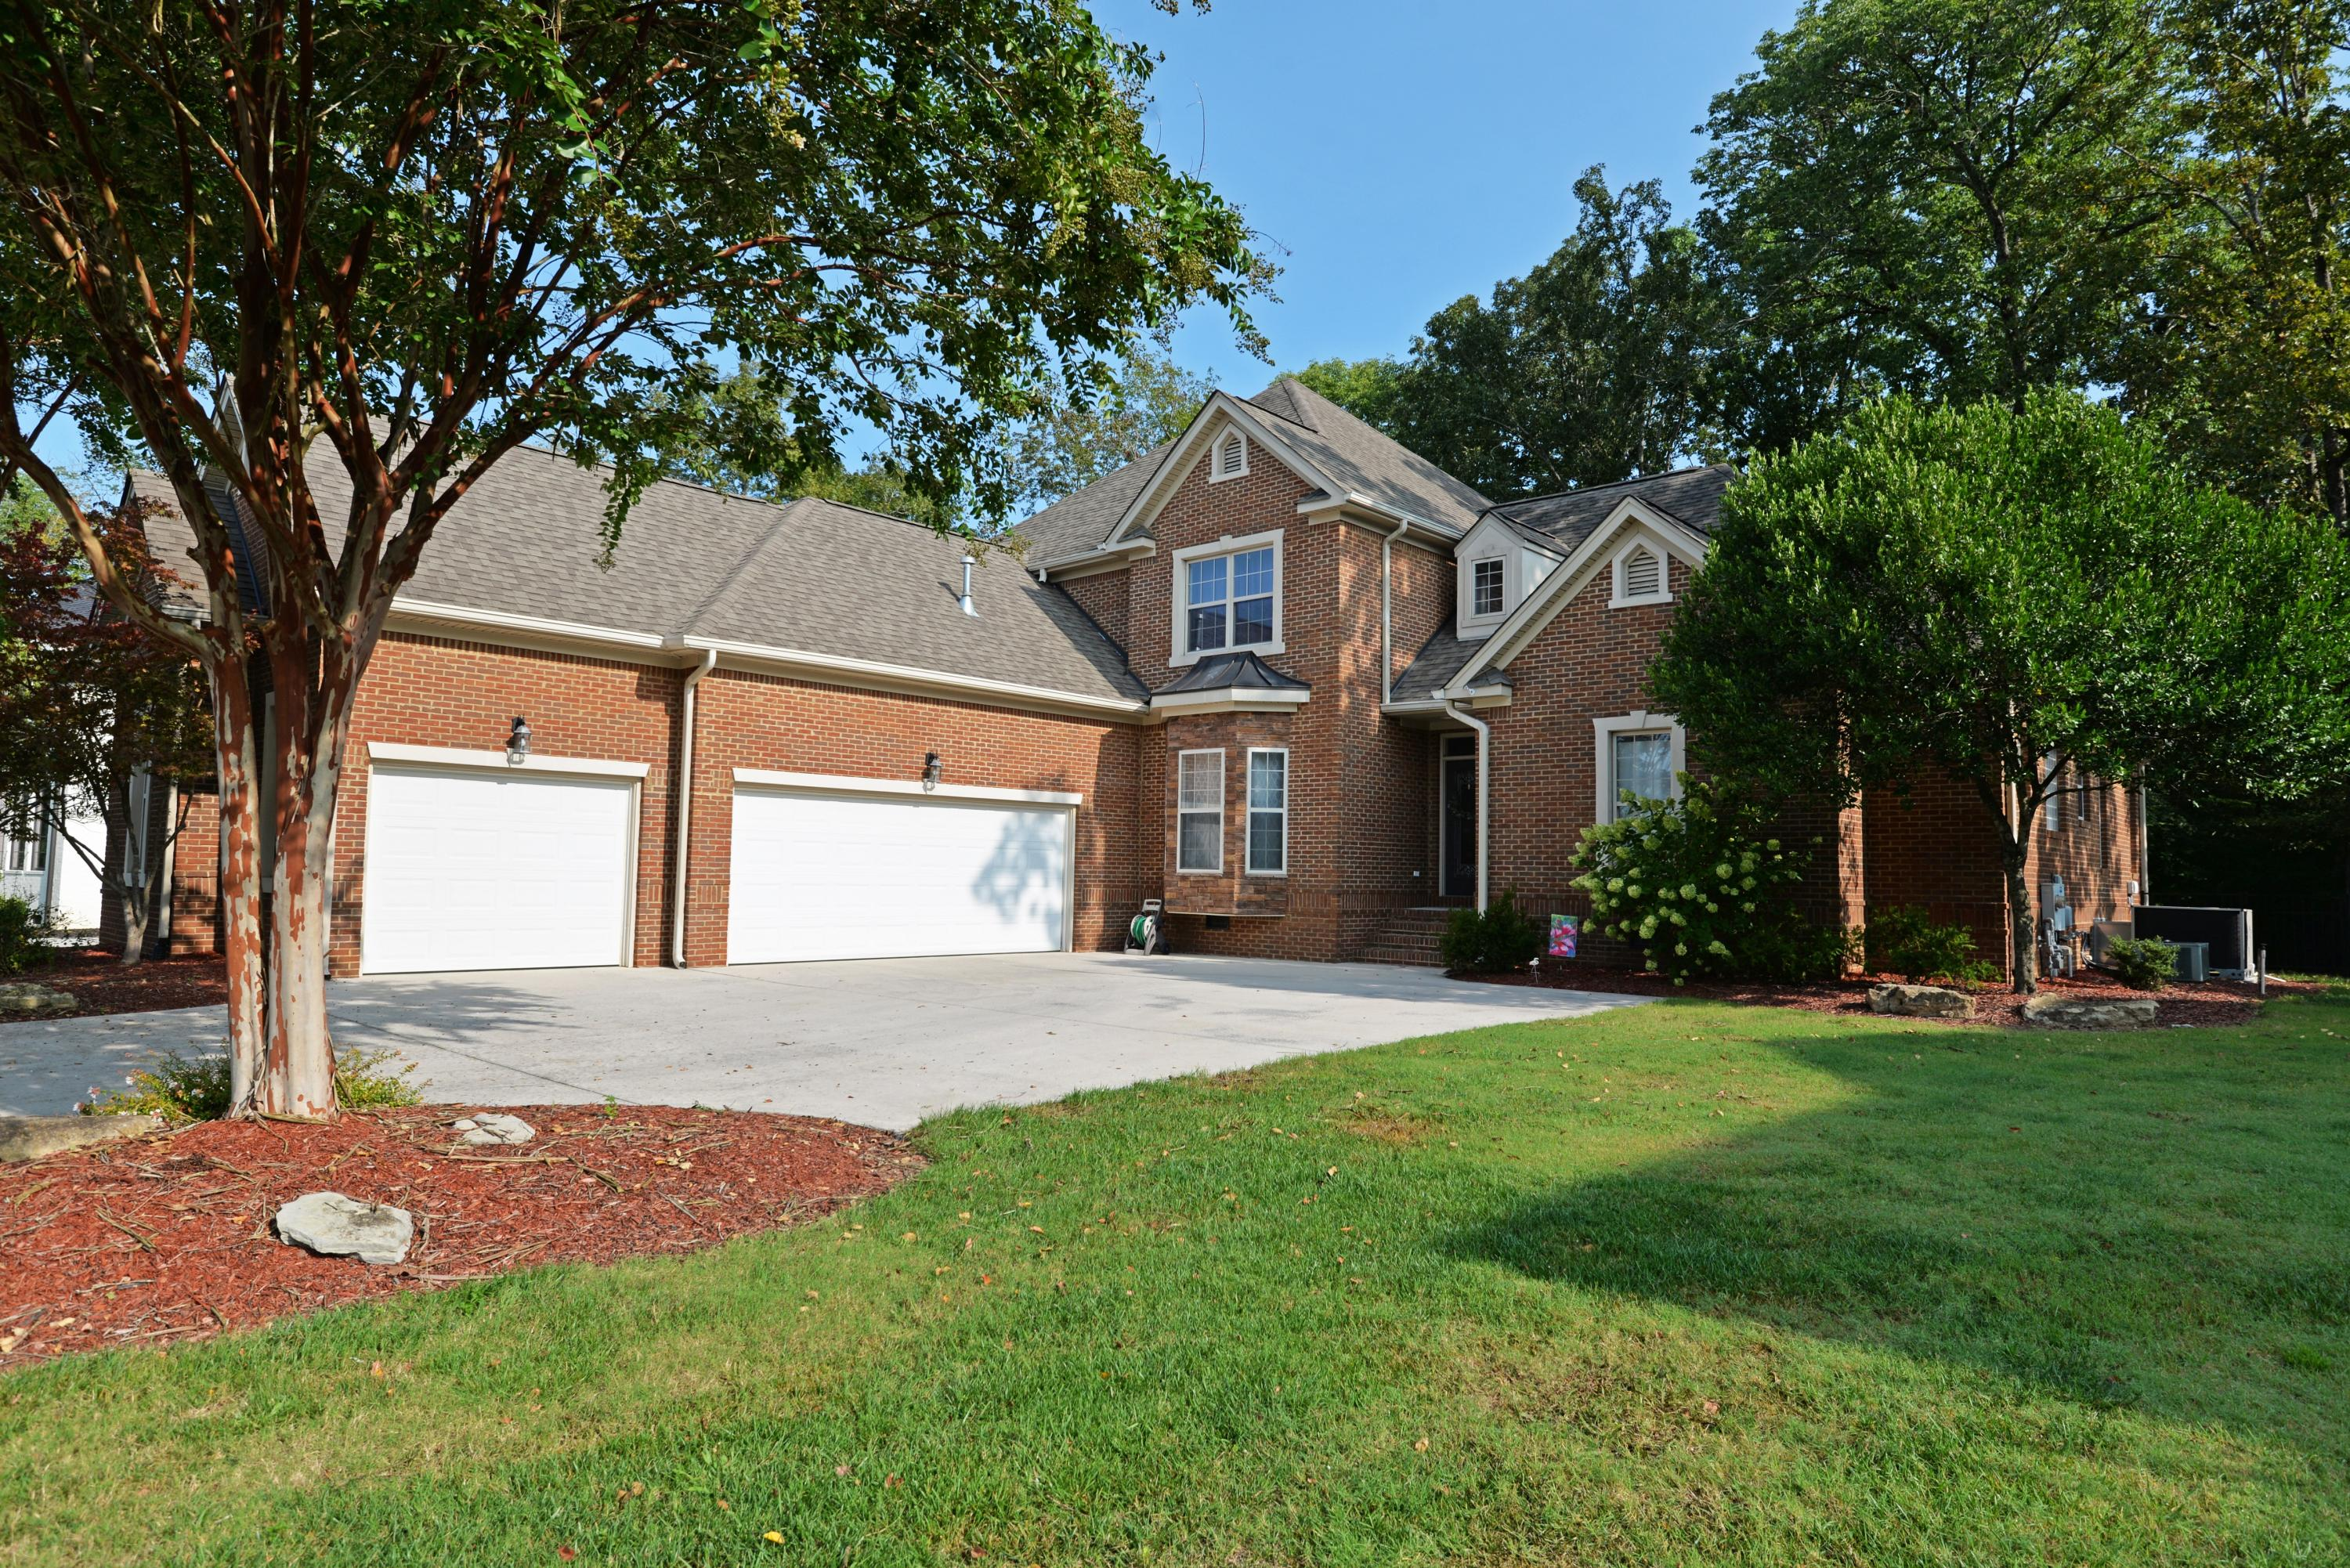 Details for 7534 Good Earth, Ooltewah, TN 37363